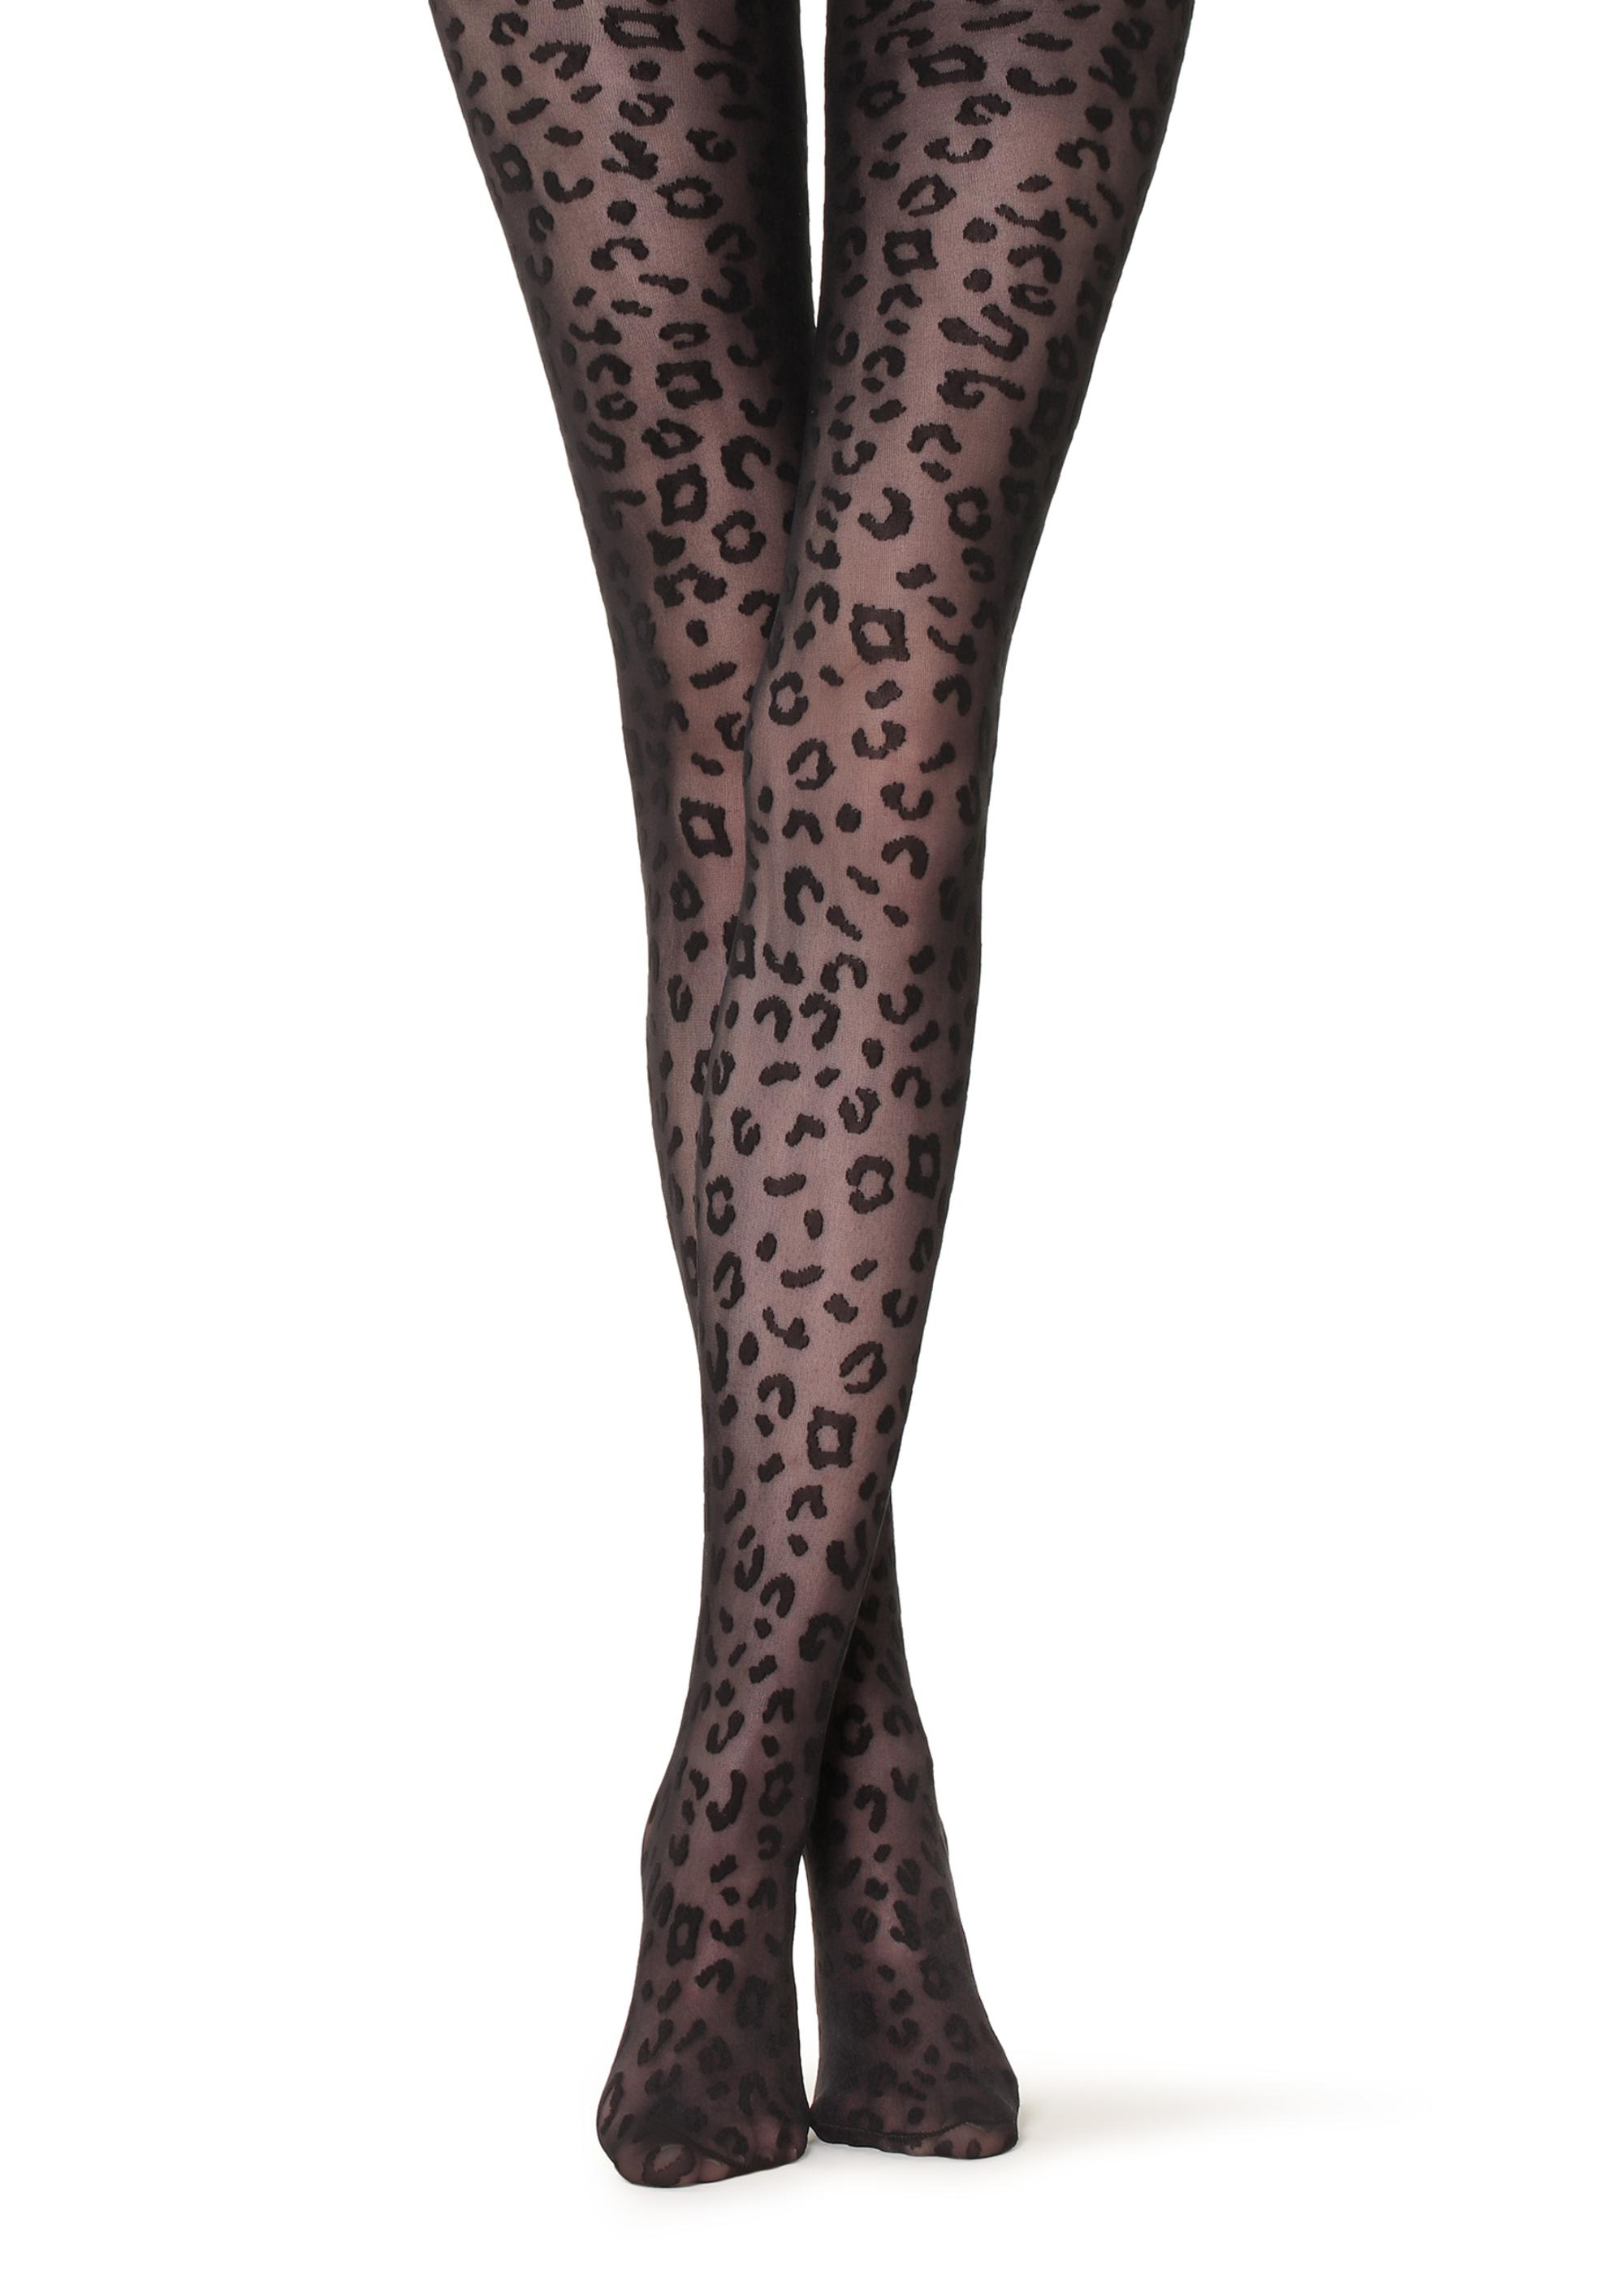 c0531830079c3 Animal-patterned tights - Calzedonia